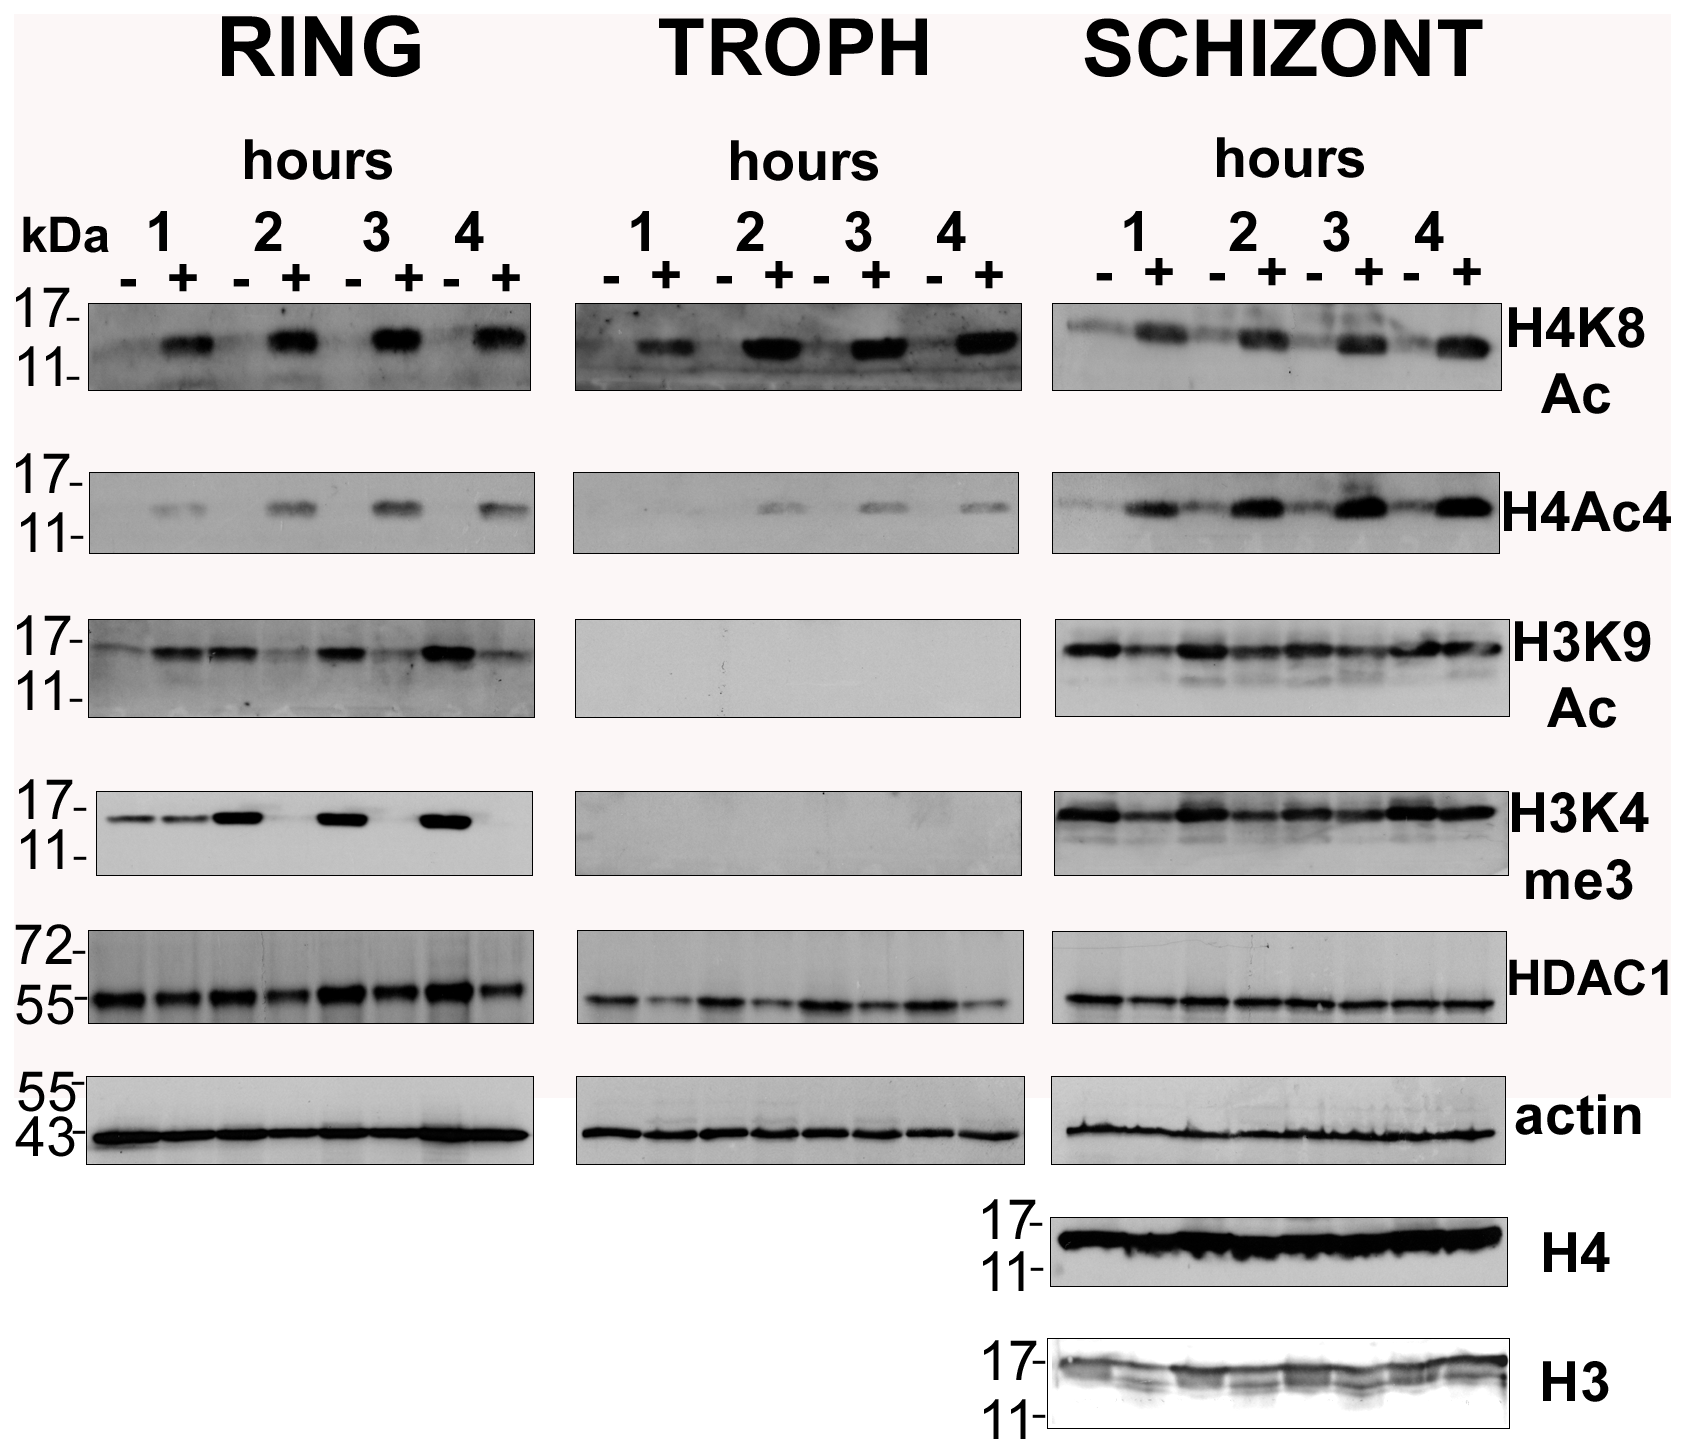 Global histone hyperacetylation induced by apicidin.